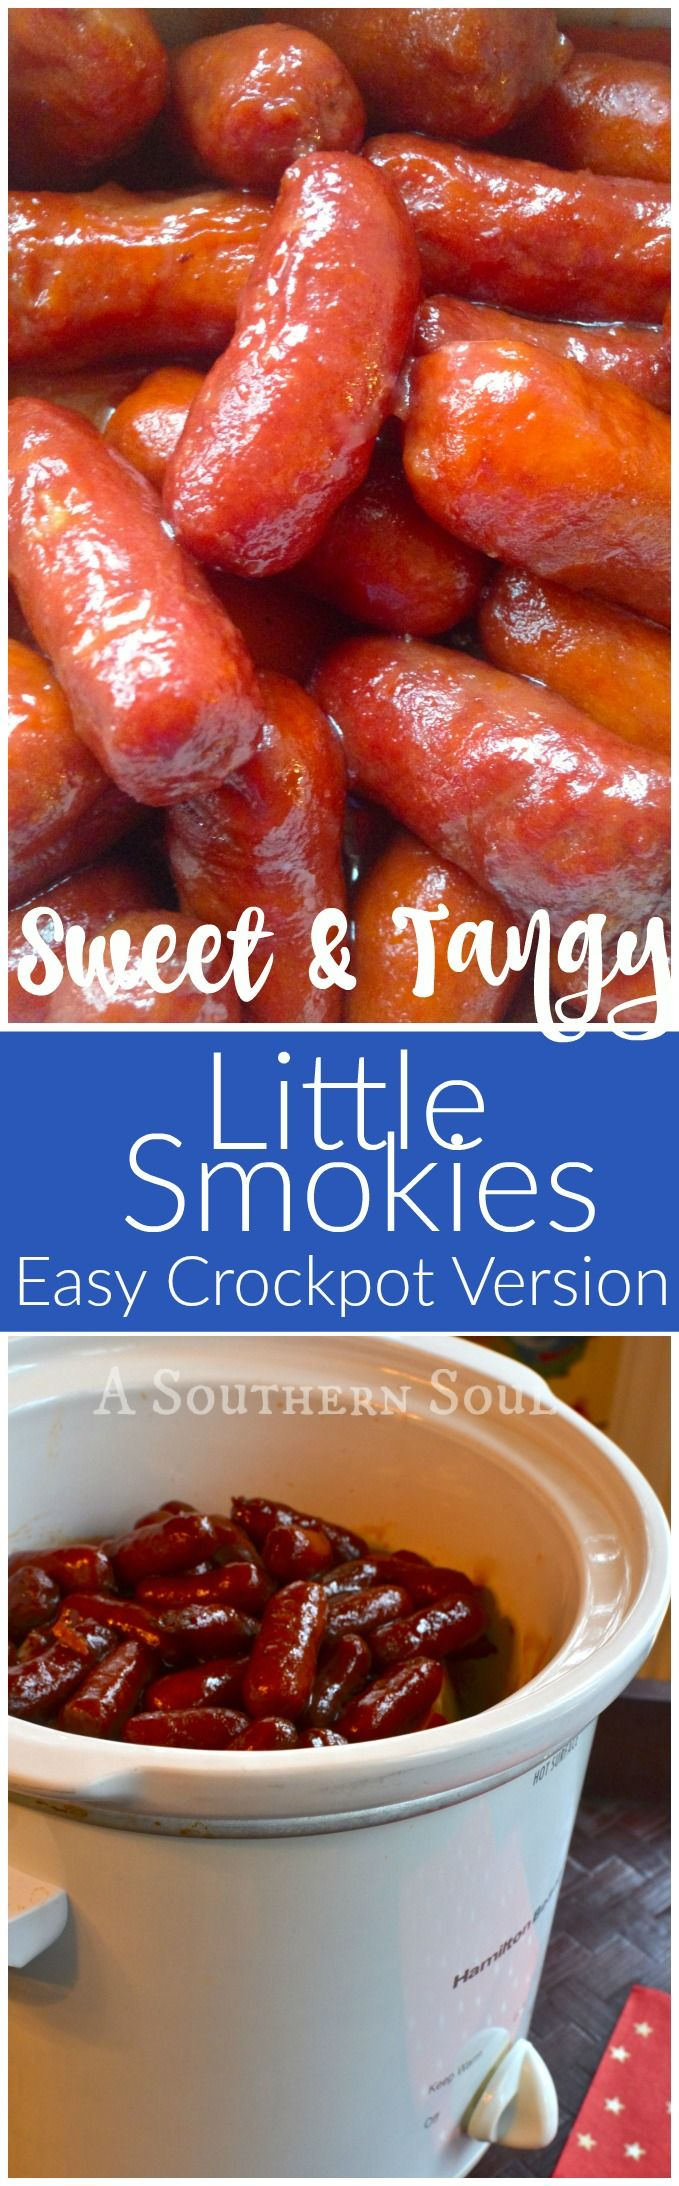 Sweet & Tangy Little Smokies                                                                                                                                                                                 More